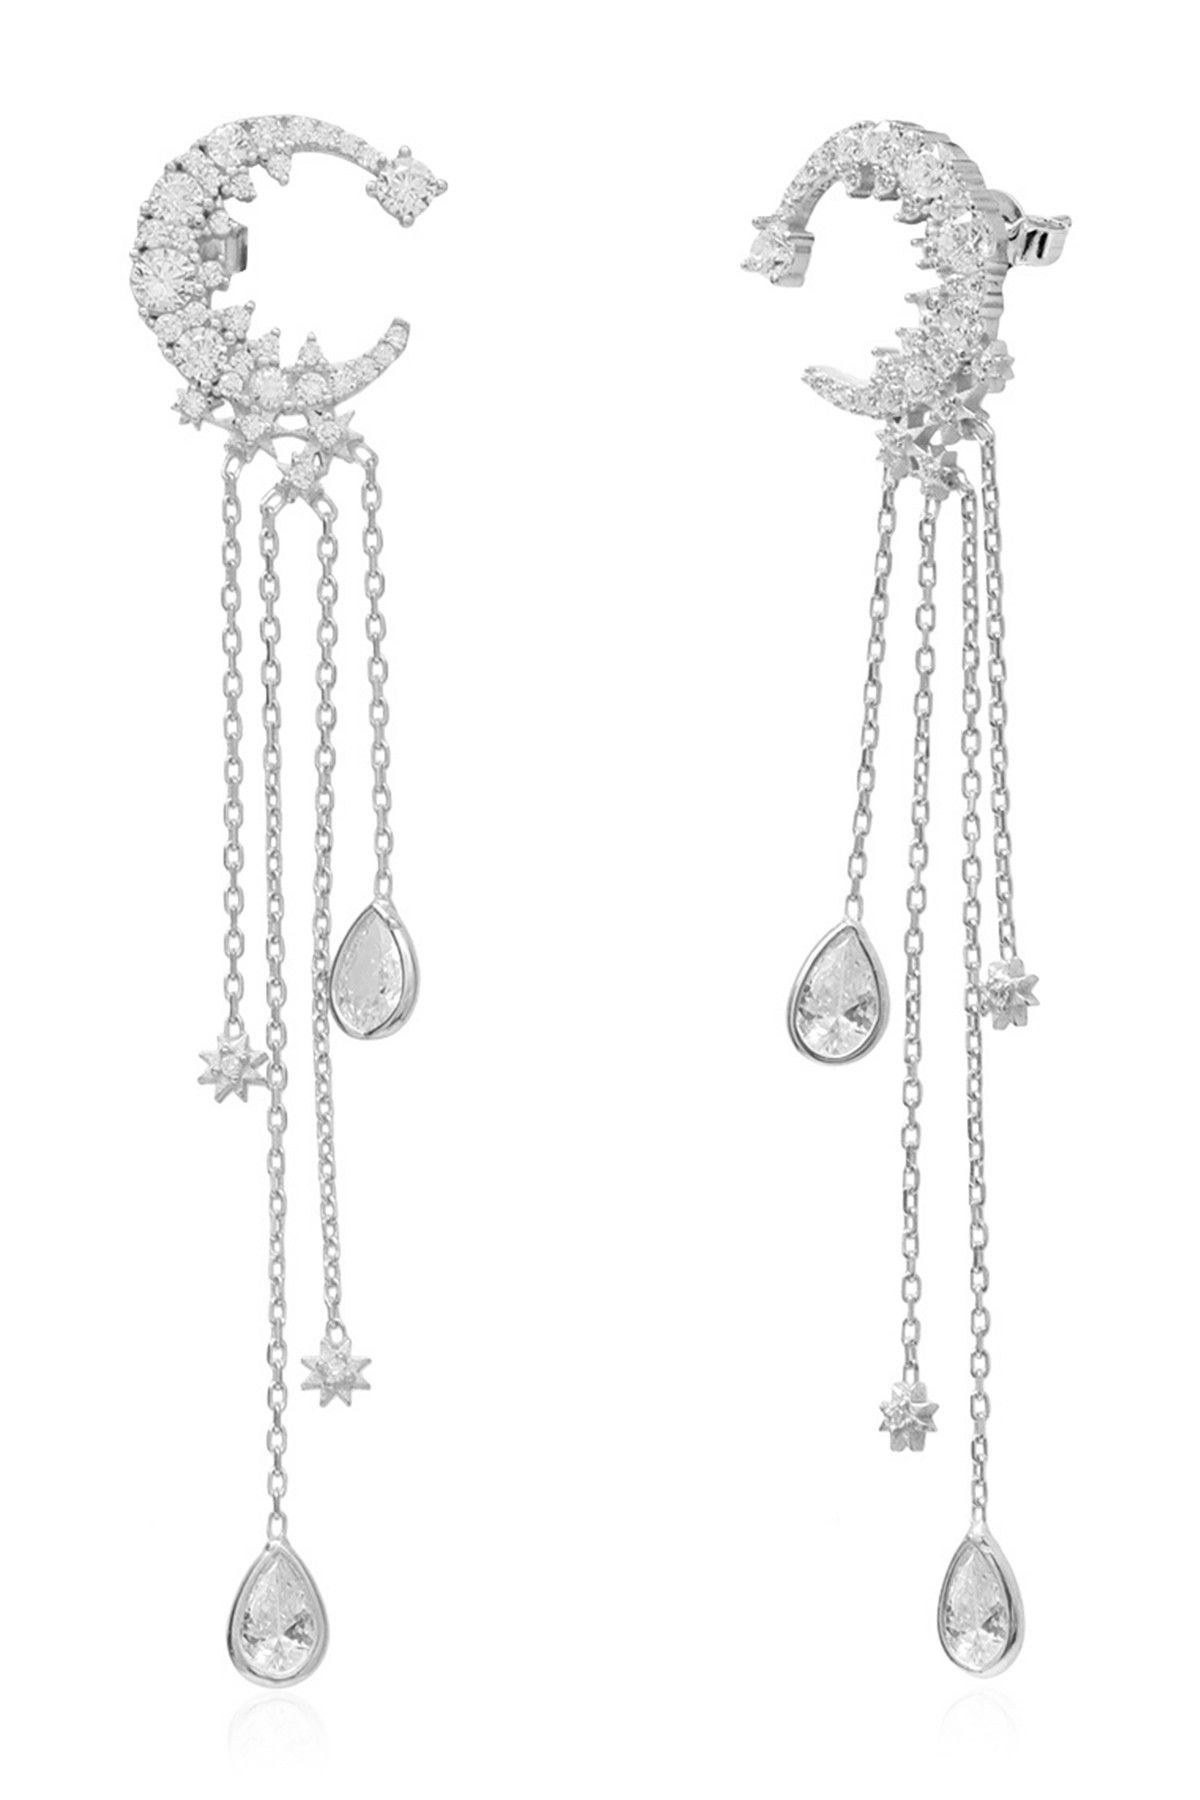 Gab+Cos Designs - Sterling Silver CZ Celestial Moon Chain Drop Earrings is now 52% off. Free Shipping on orders over $100.